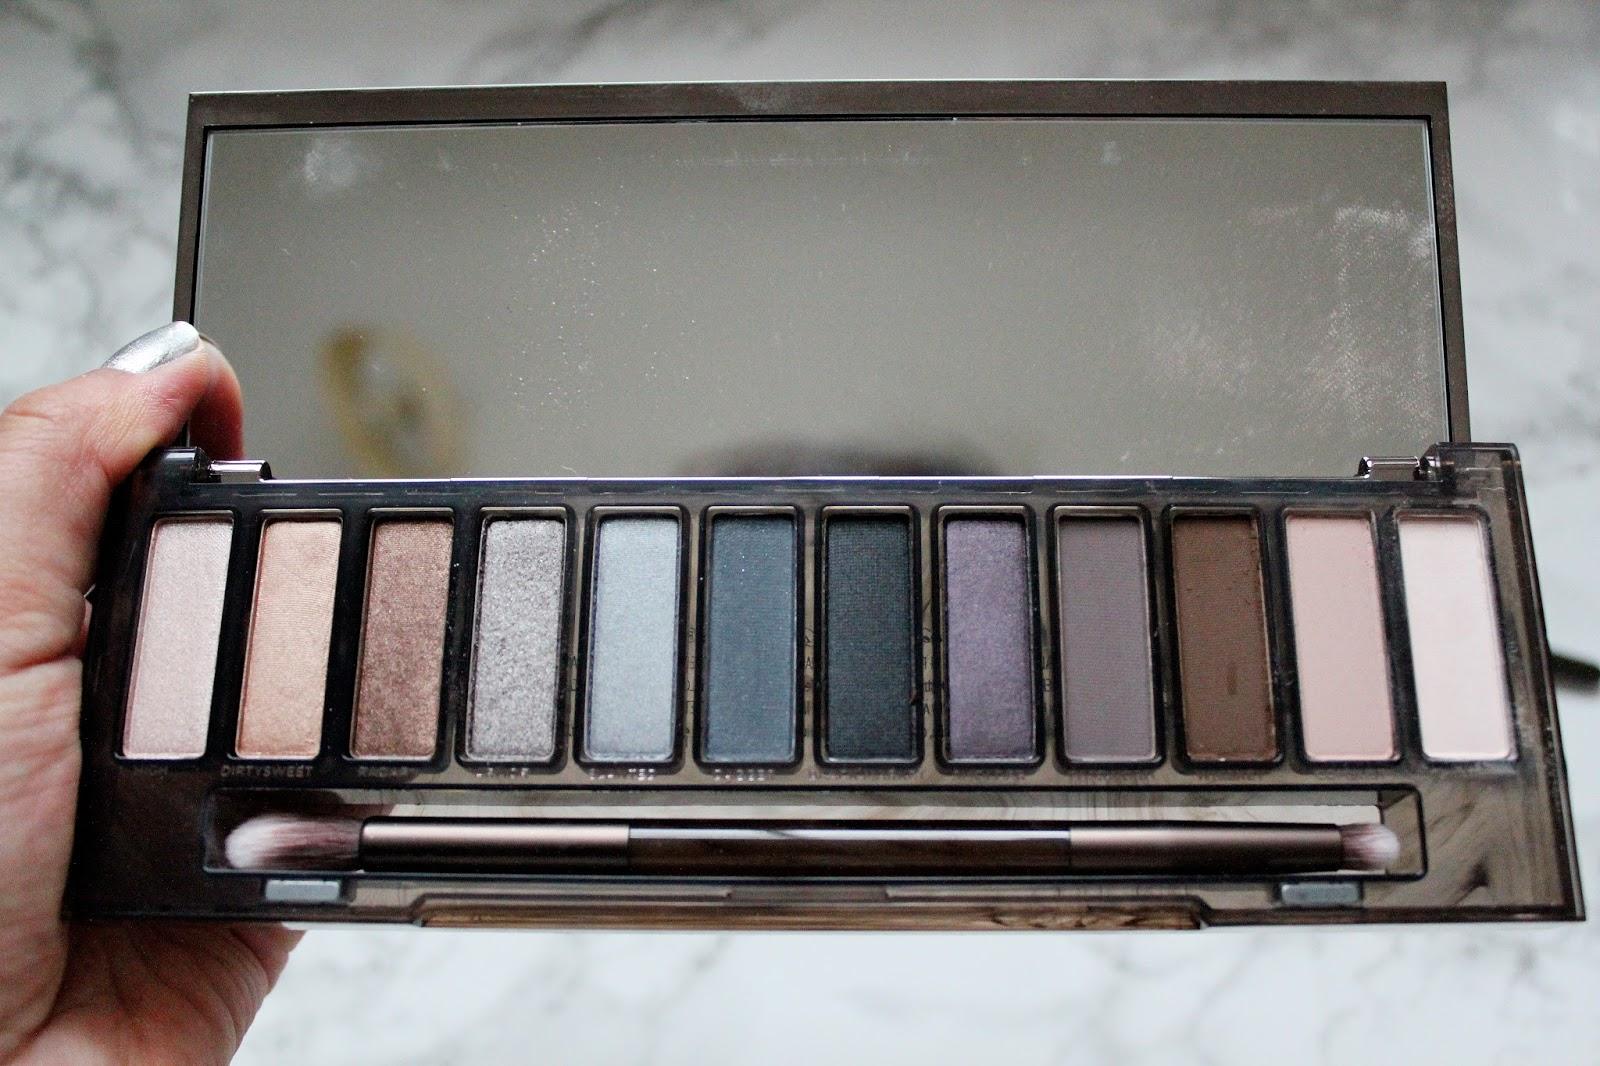 Urban Decay Naked Smoky Palette, £38, available at shopnow-jl6vb8f5.ga If we had to describe this beauty hero in one word, it would be versatile. There are 12 different shades, whether you want shimmering nude hues or a bold silver.